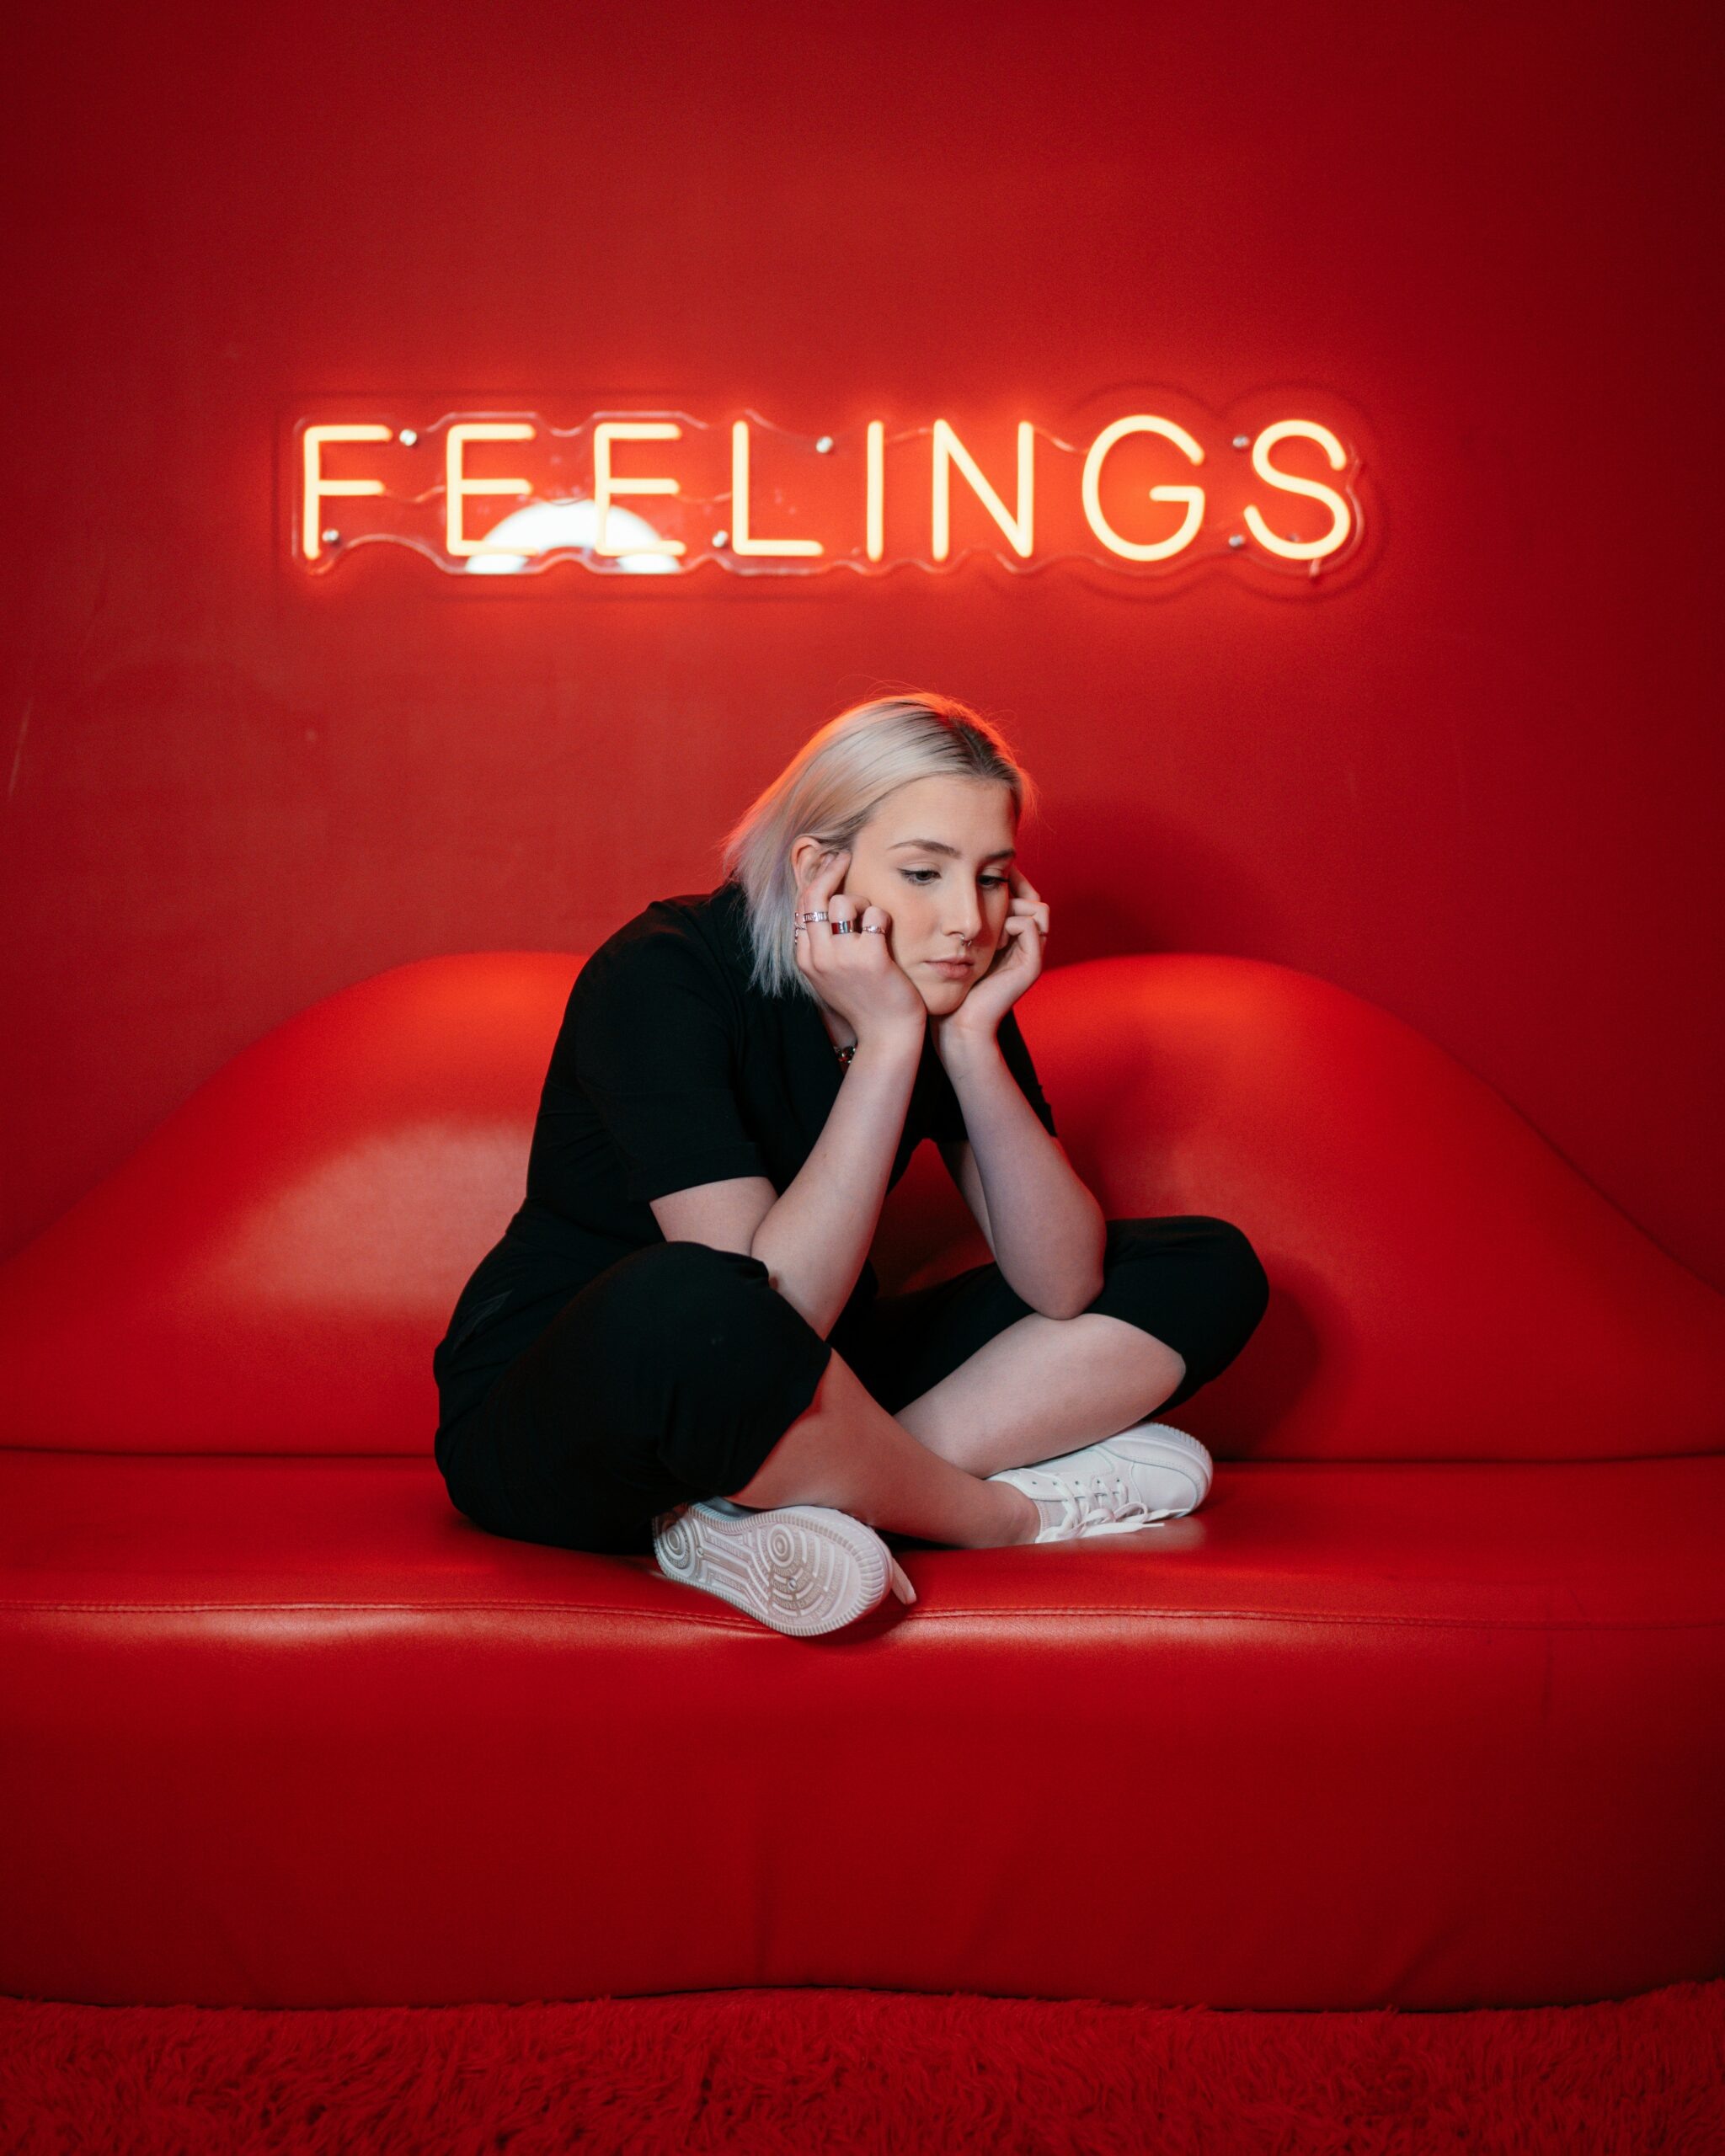 """A woman sitting on a red couch in front of a lit sign """"Feelings"""", appearing to be someone who could benefit from tips to manage depression and anxiety flareups"""